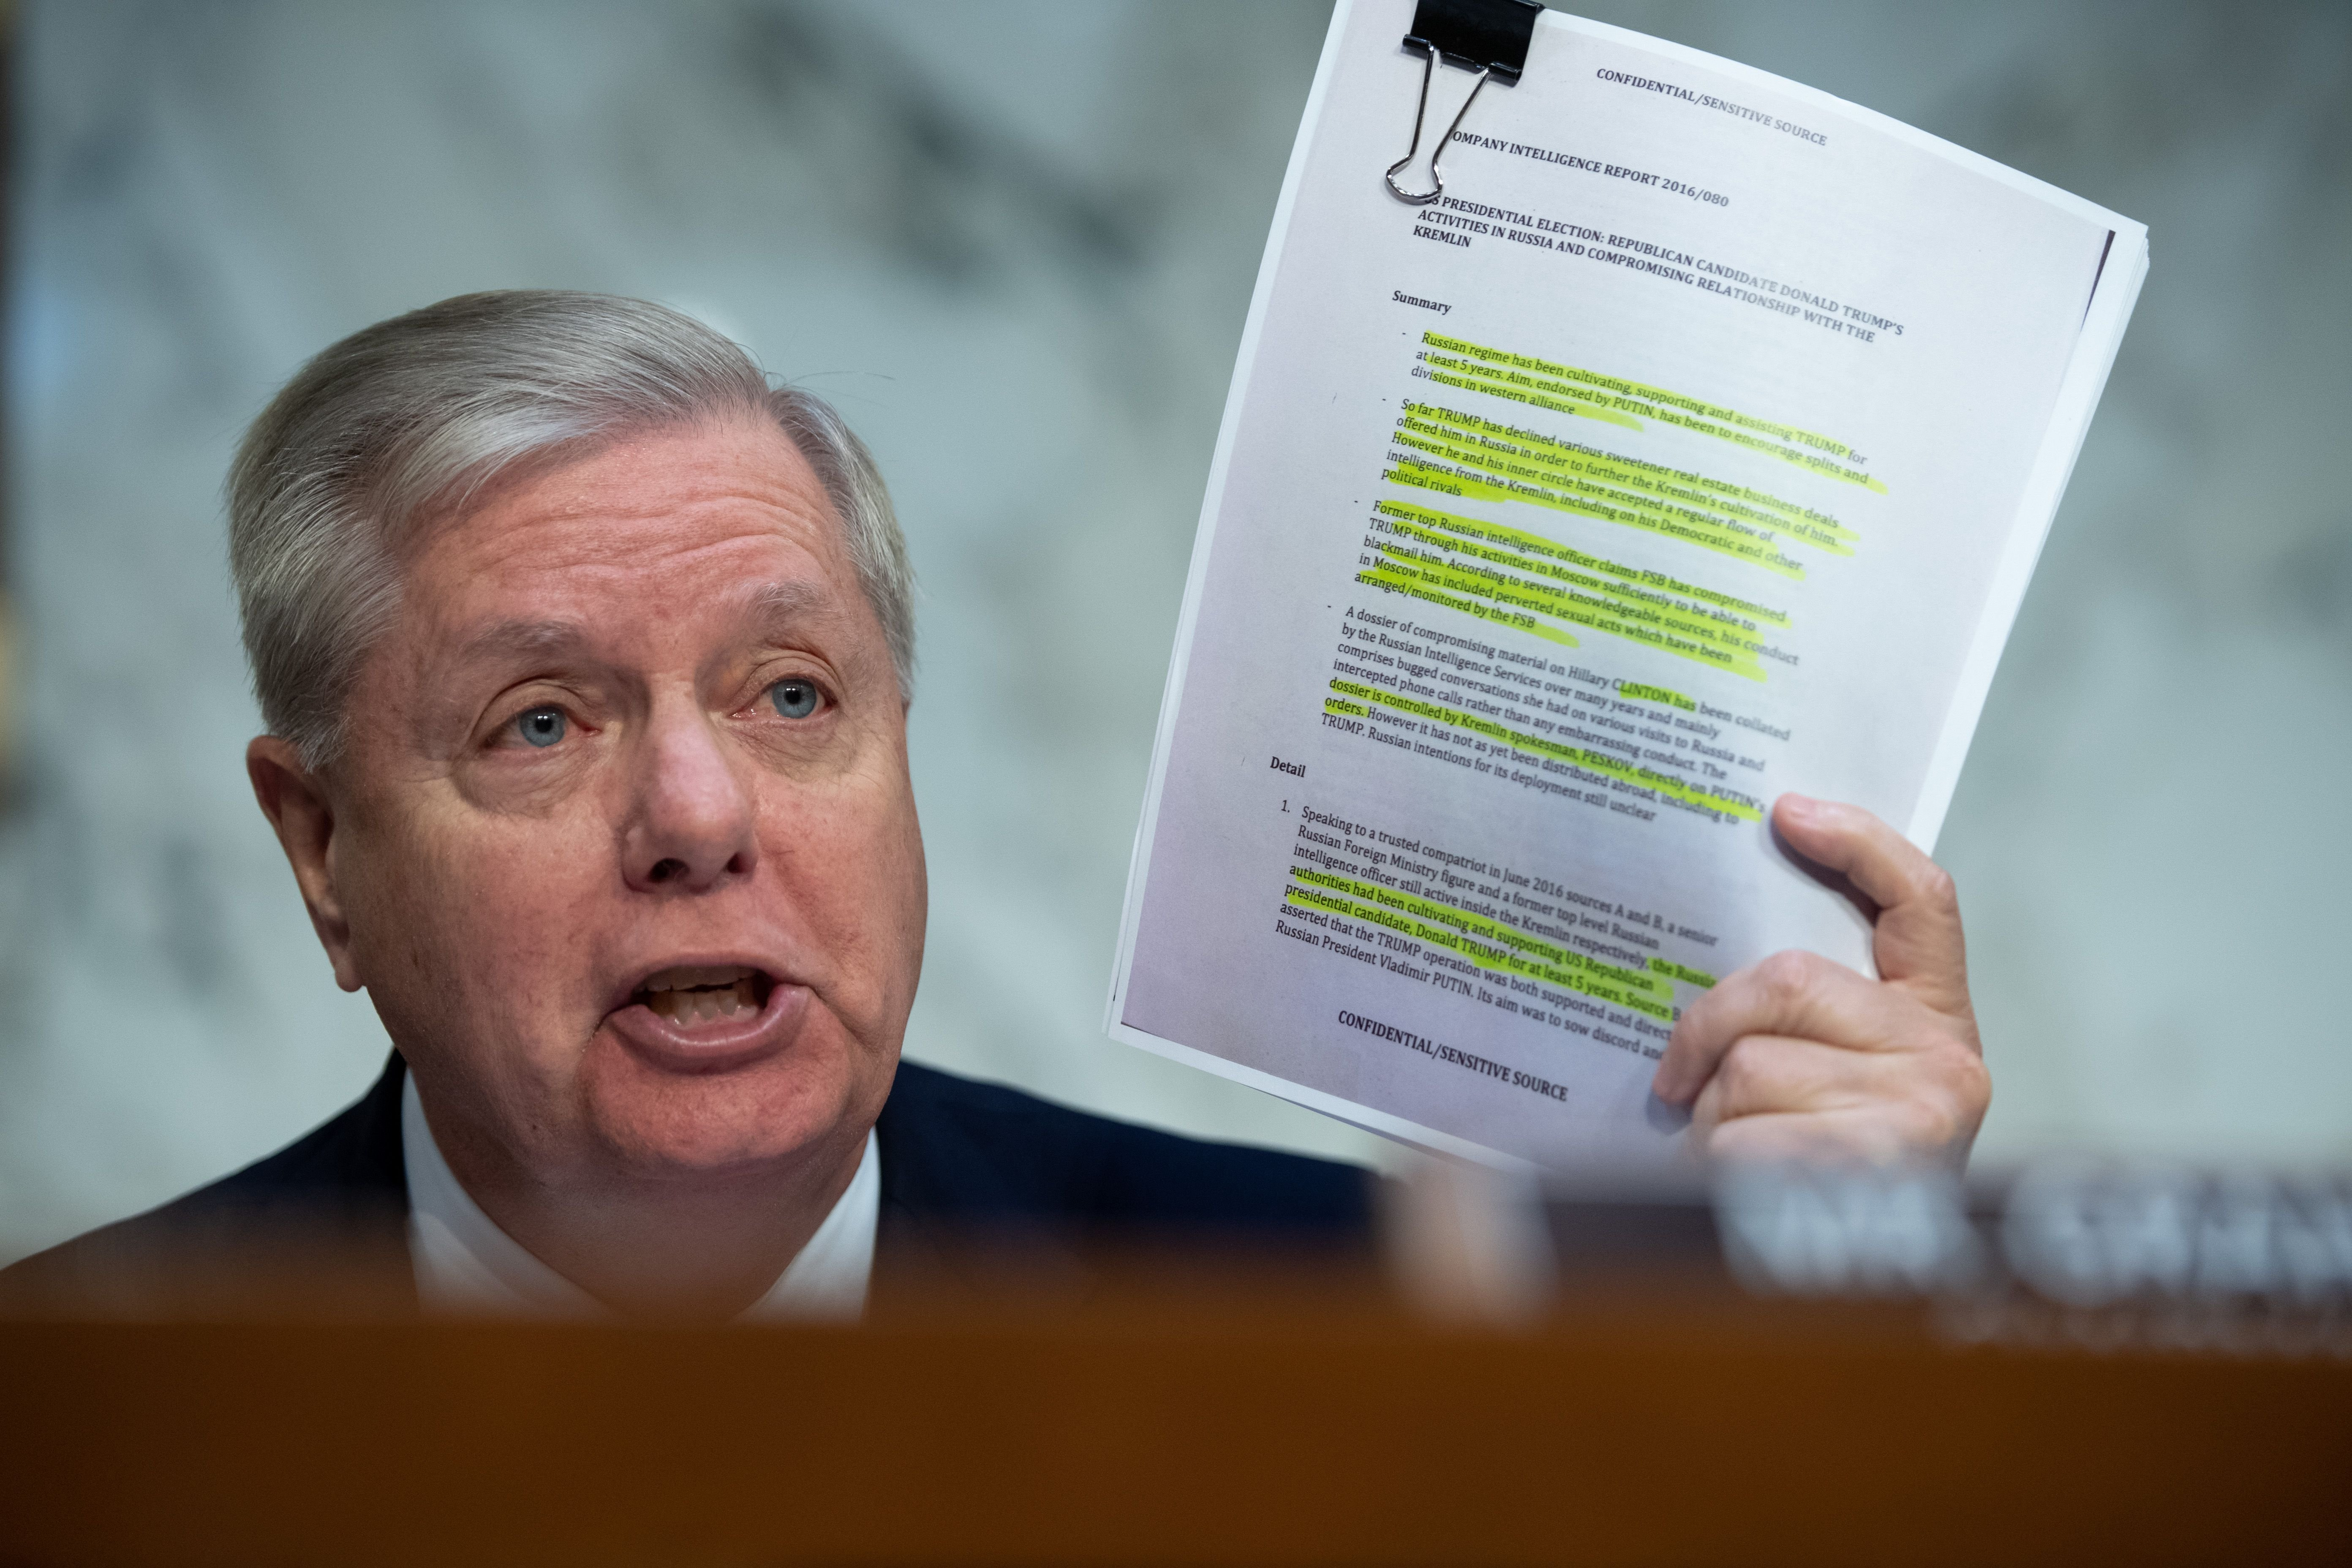 Chairman of the Senate Judiciary Committee Lindsey Graham, Republican of South Carolina, holds a copy of the Steele Dossier, as Justice Department Inspector General Michael Horowitz testifies about the Inspector General's report on alleged abuses of the Foreign Intelligence Surveillance Act (FISA). (SAUL LOEB/AFP via Getty Images)